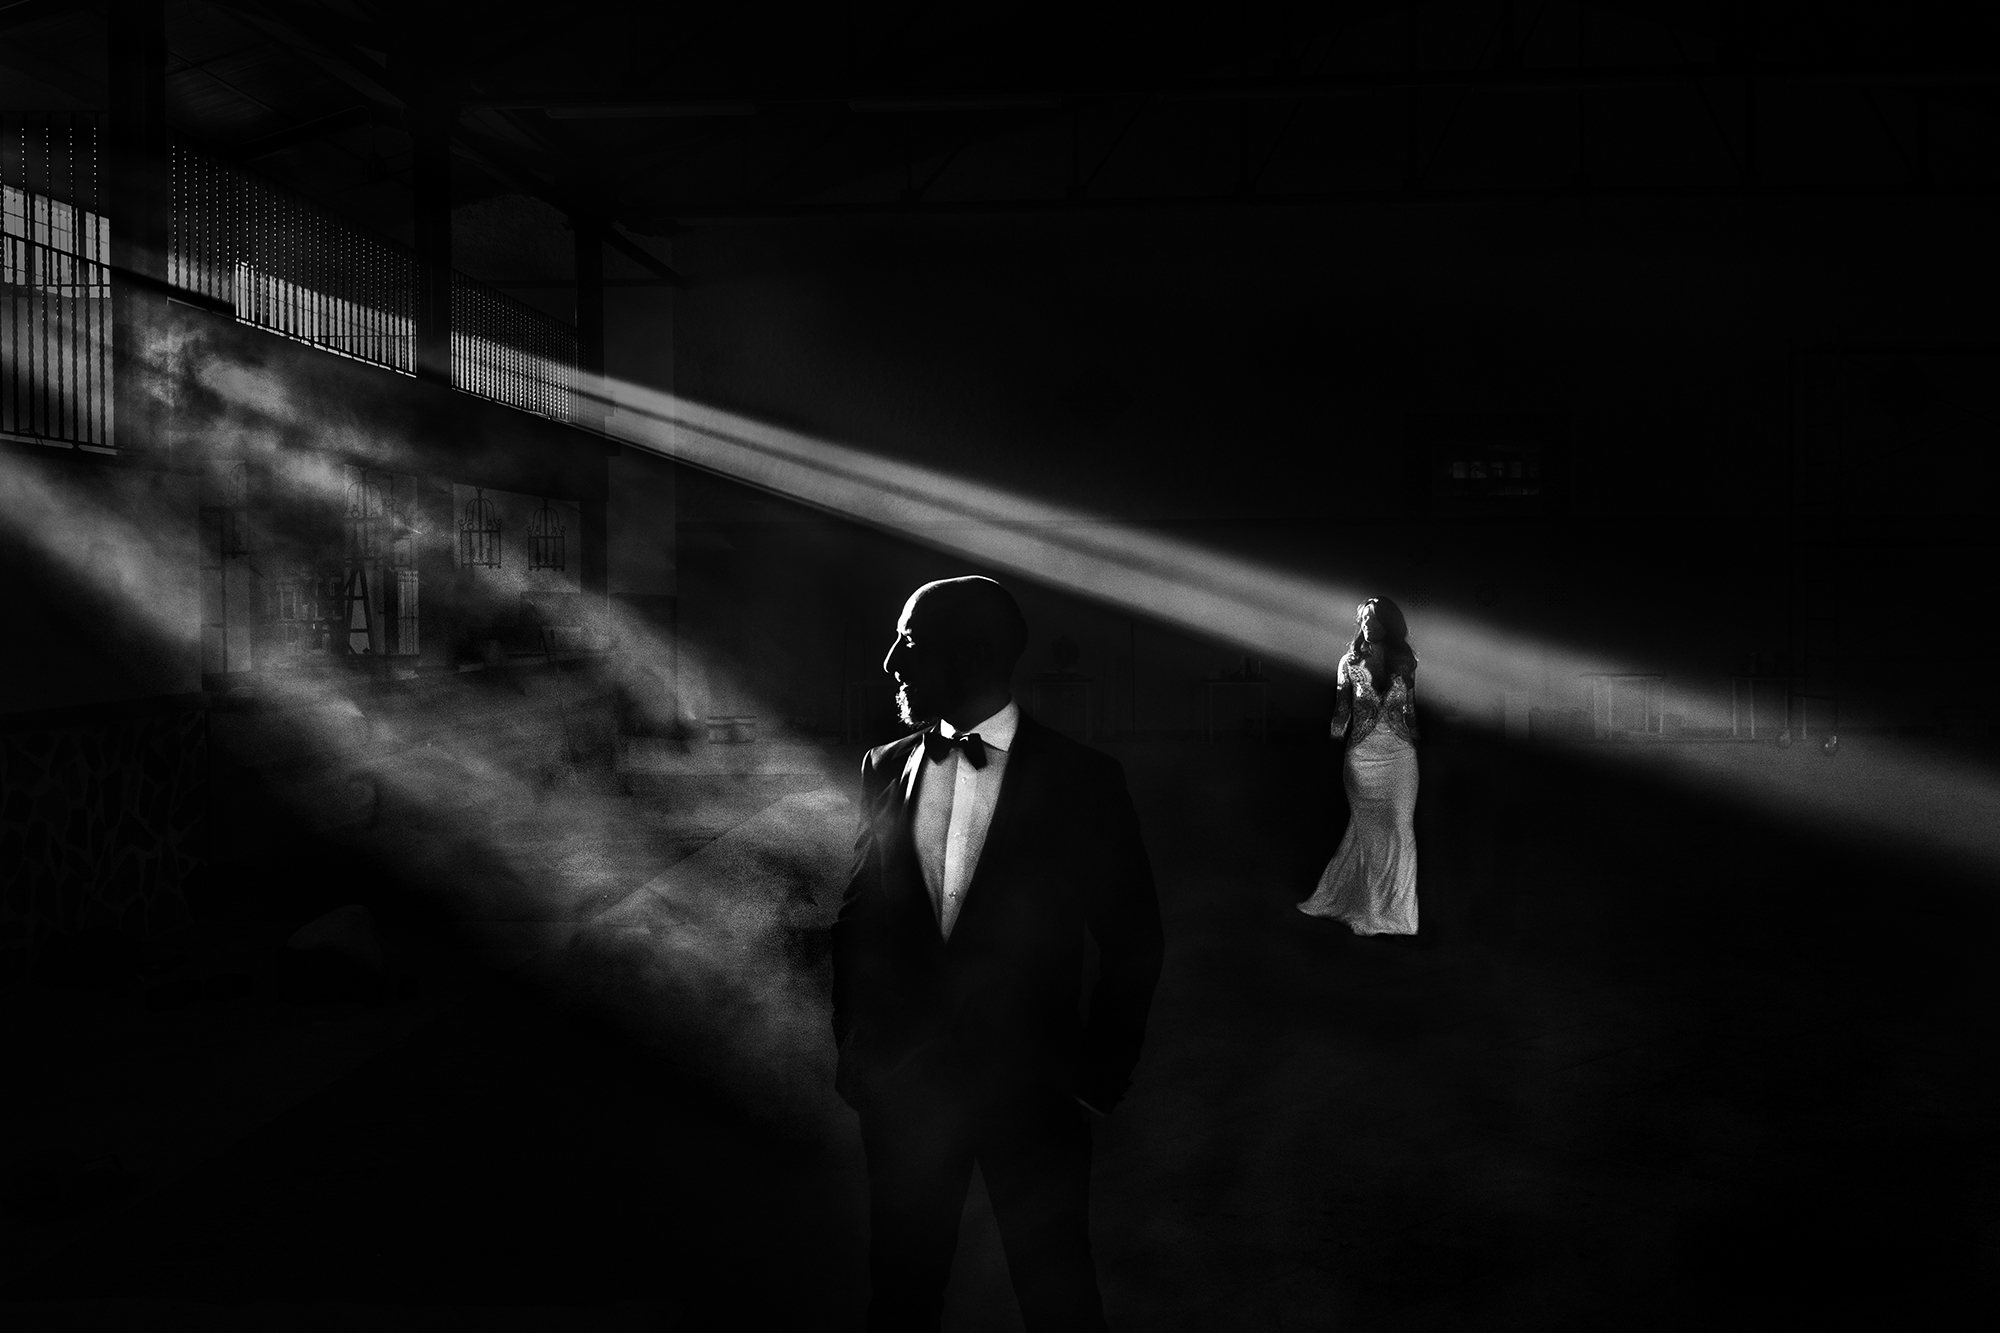 moody-black-and-white-dramatic-window-lighting-bride-and-groom-portrait-worlds-best-wedding-photos-victor-lax-spain-wedding-photographer